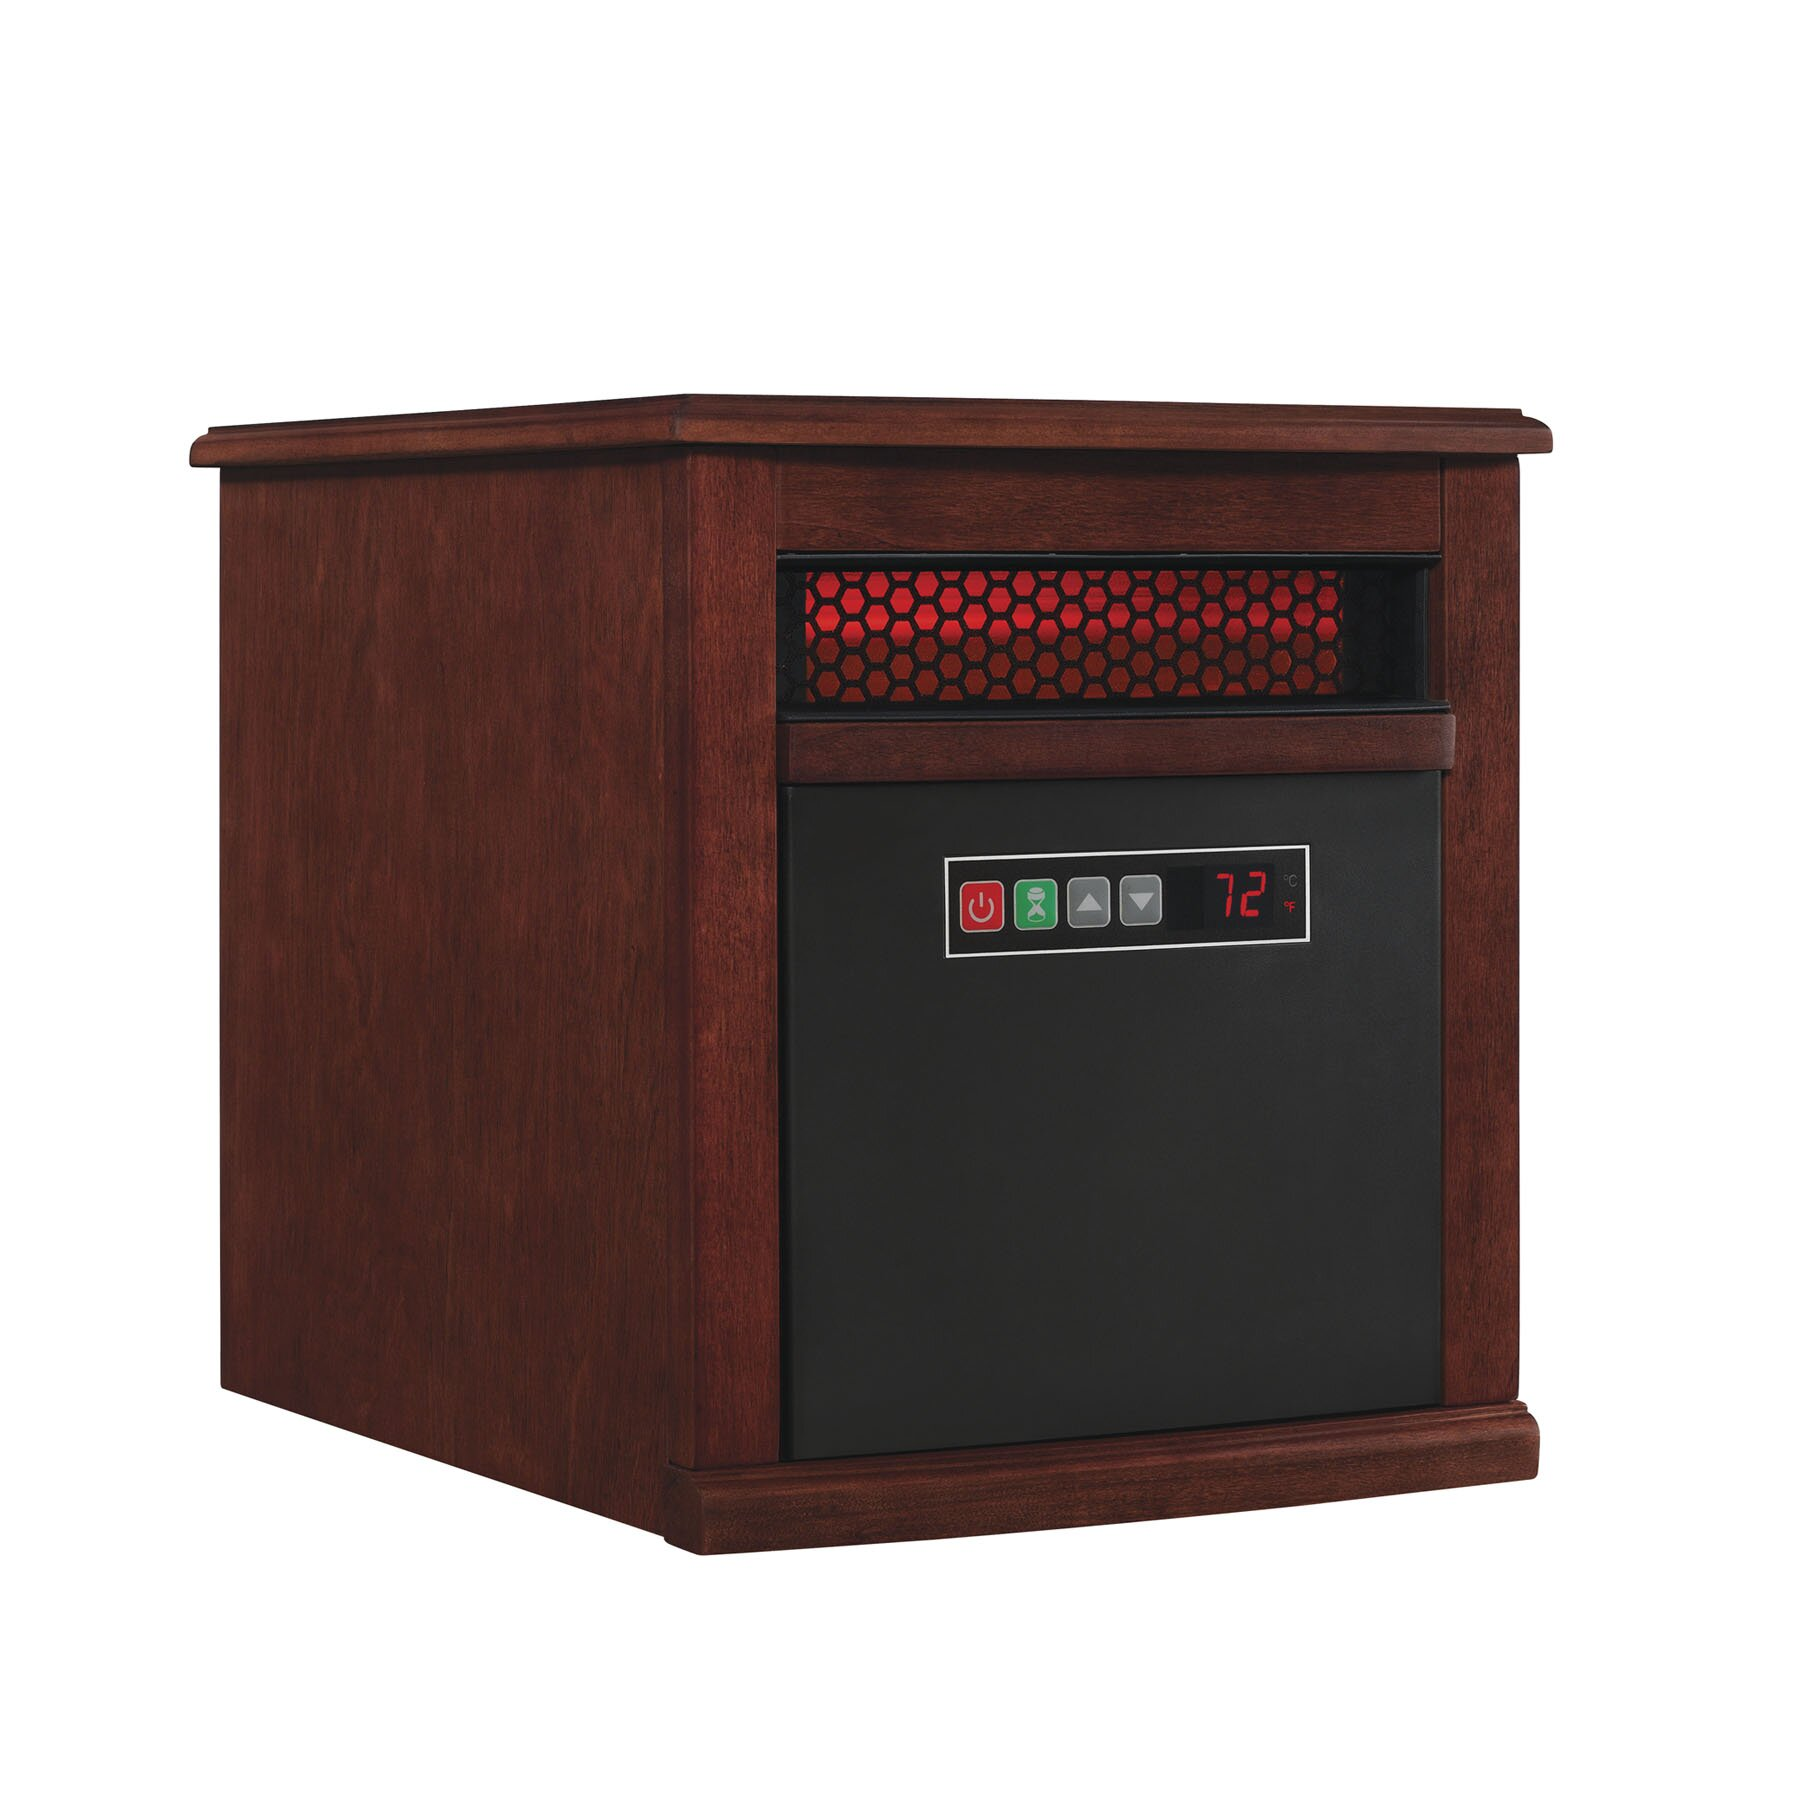 Home Improvement Heating & Cooling  Electric Space Heaters